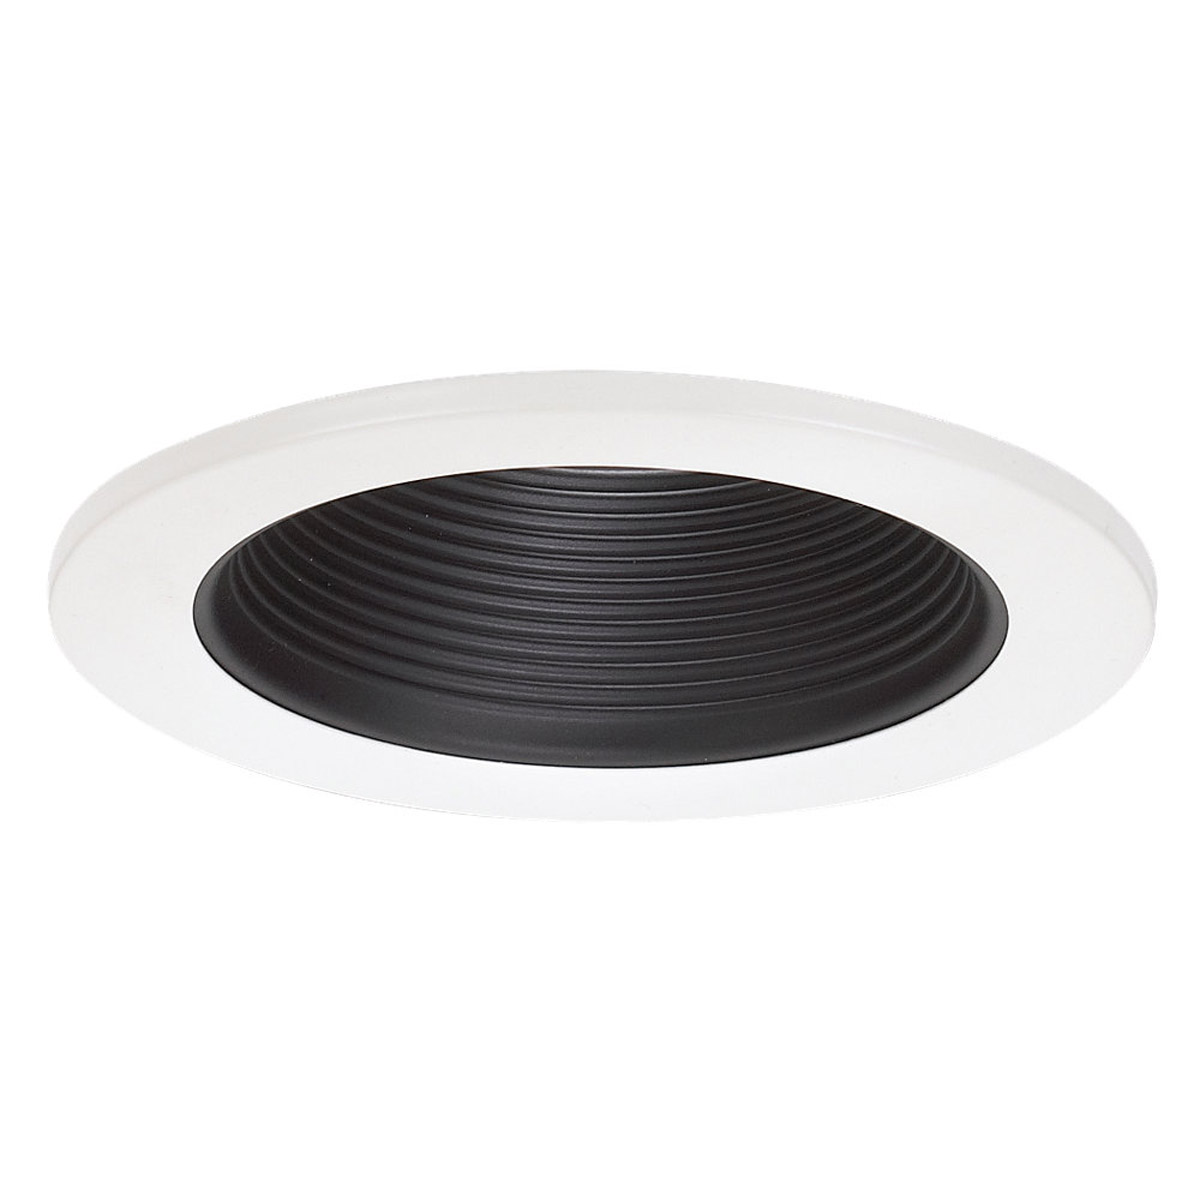 Sea Gull Lighting Signature Recessed Trim Only in White 1156AT-15